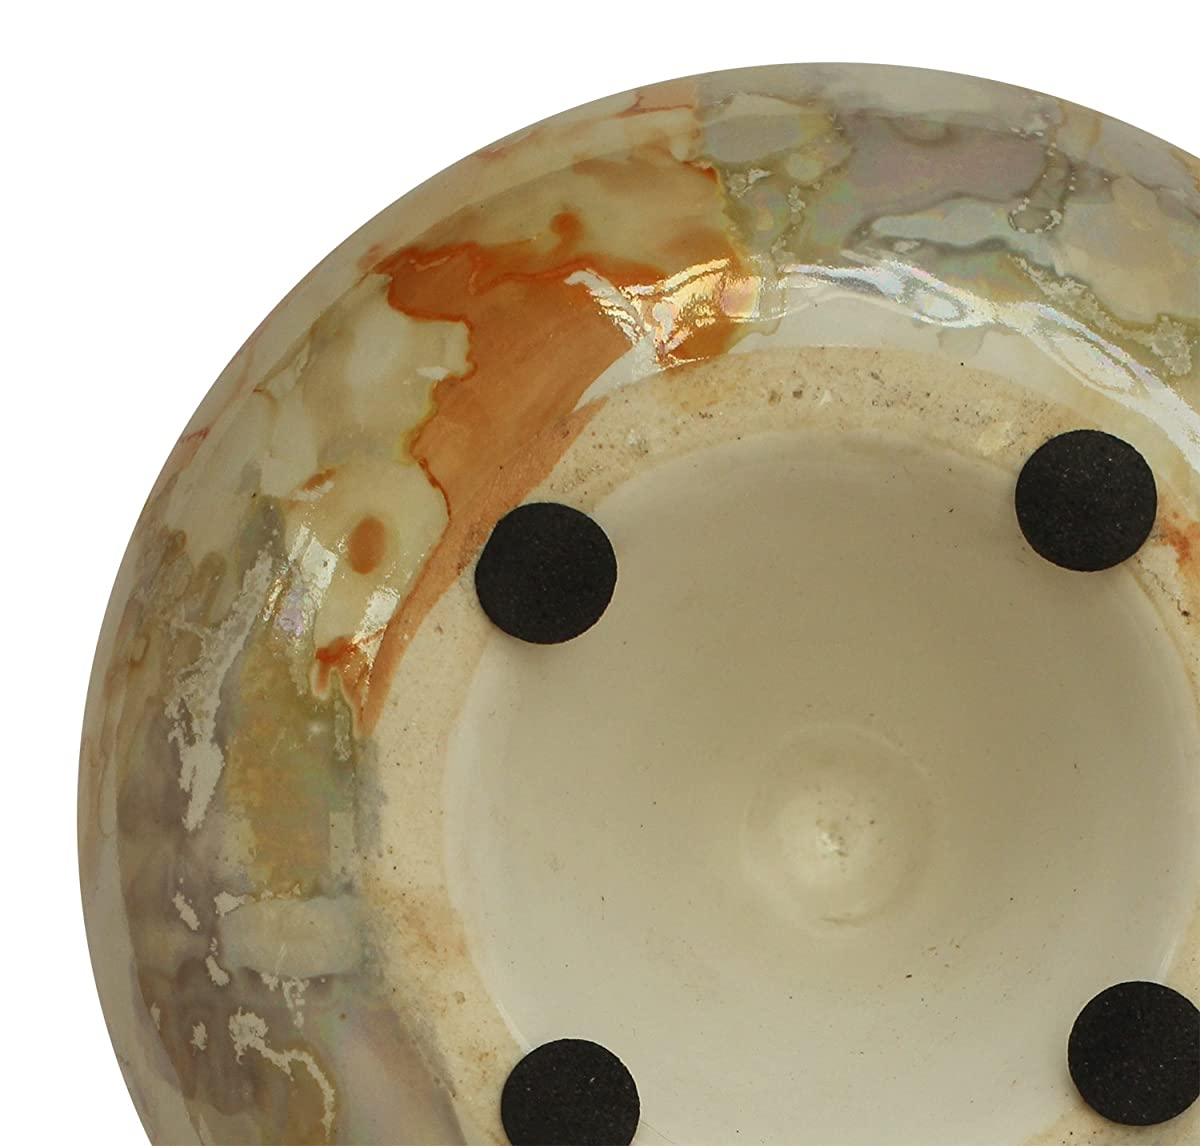 """AB Handicrafts Moroccan Round Ashtray 4"""" Hand-Painted Ceramic Ash Tray with 3 Cigarette Holder Slots (Lustre Paint Brown)"""